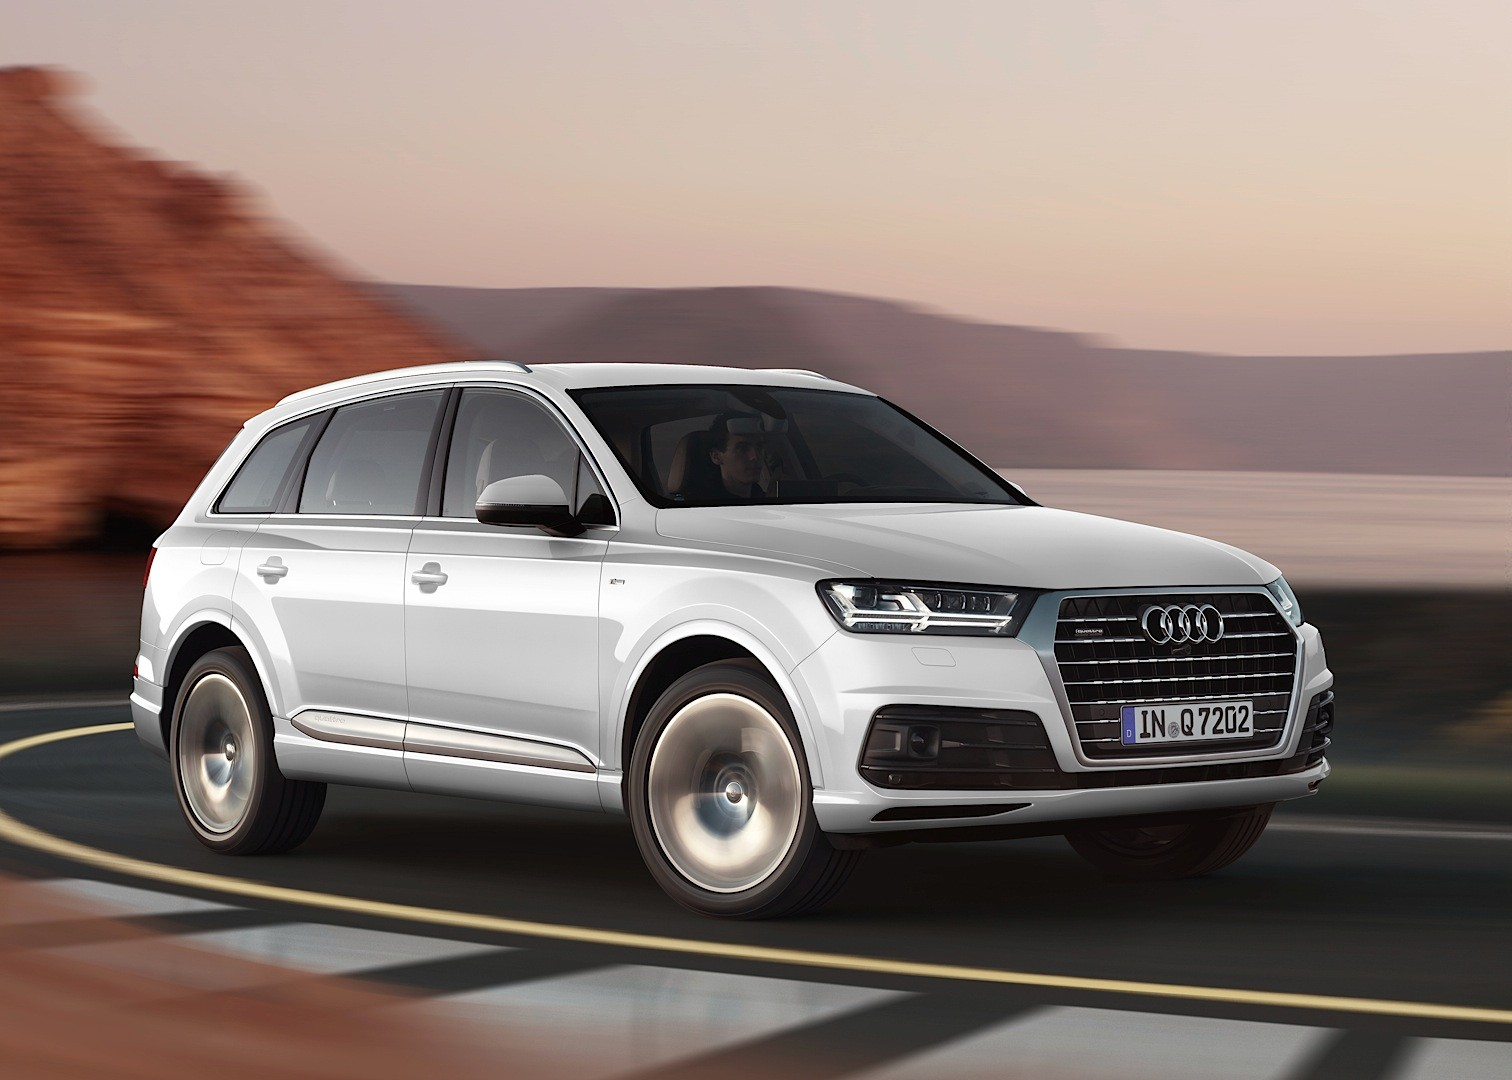 Audi Shows 2015 Q7 in New Tofana White Color, Reveals ...